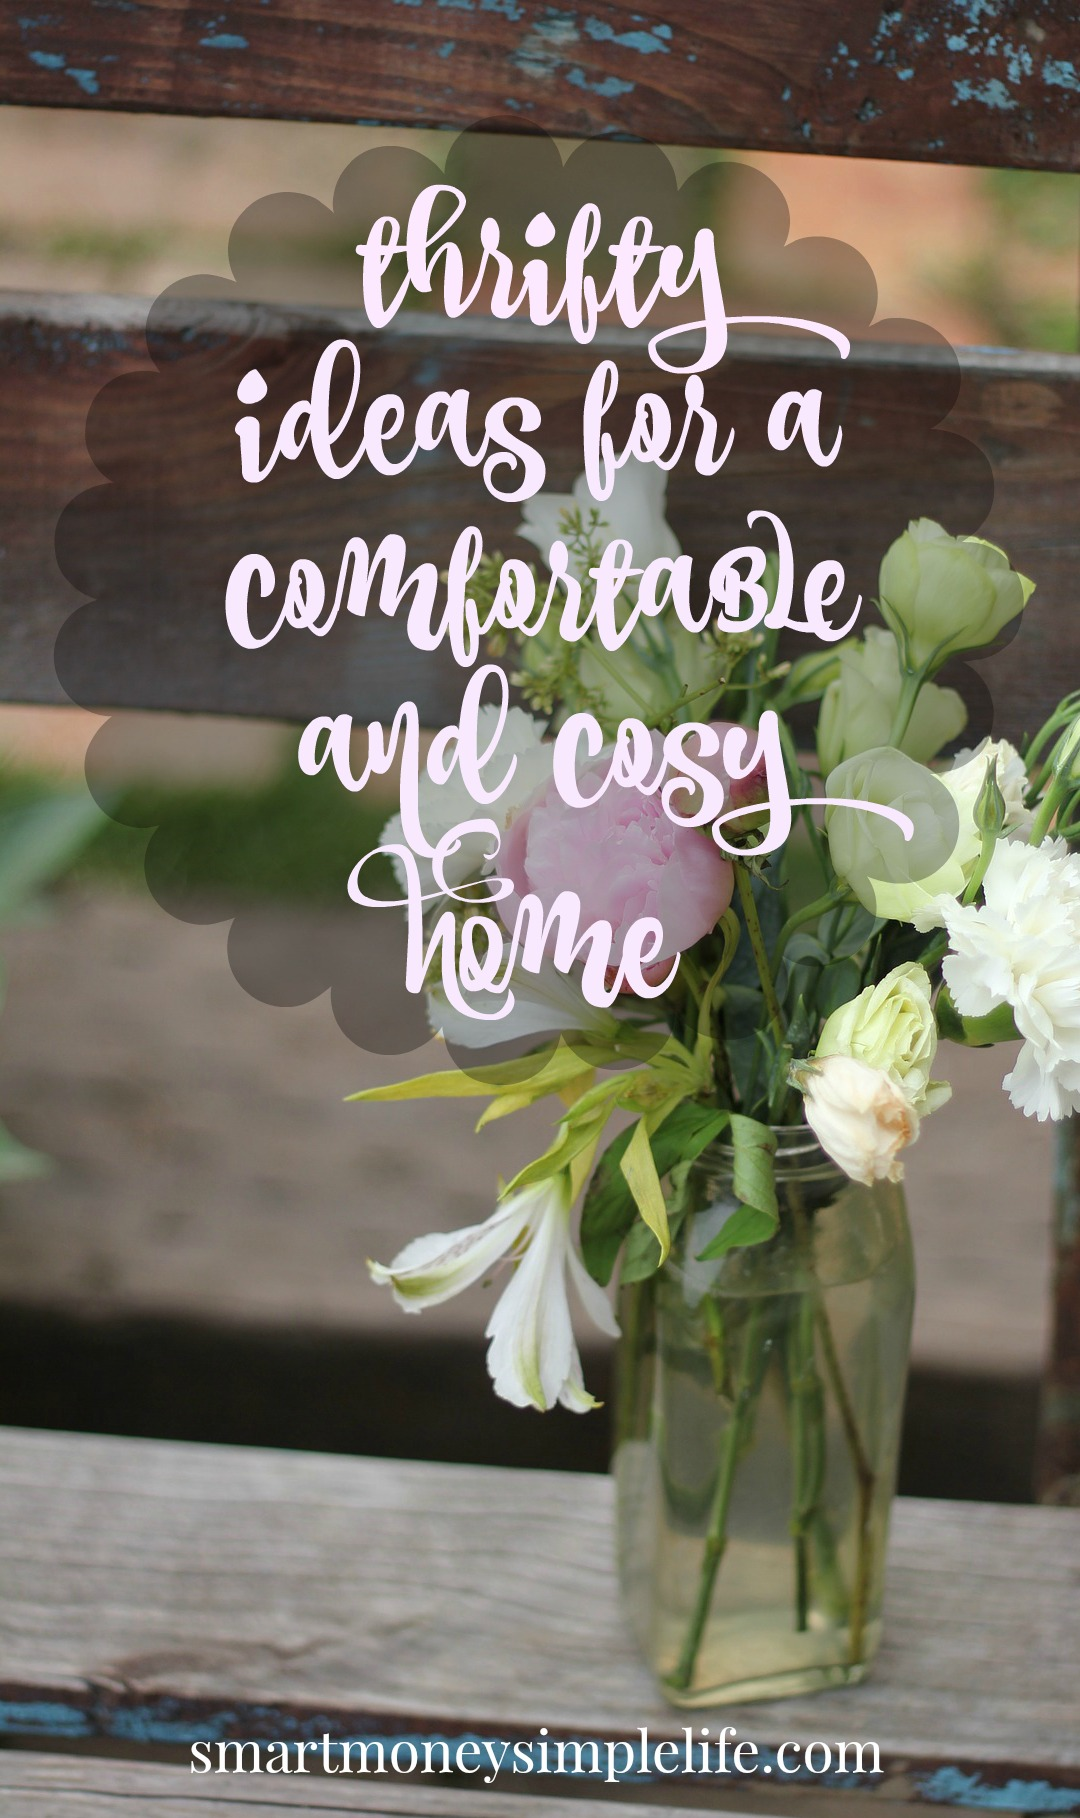 thrifty ideas for creating a comfortable and cosy home